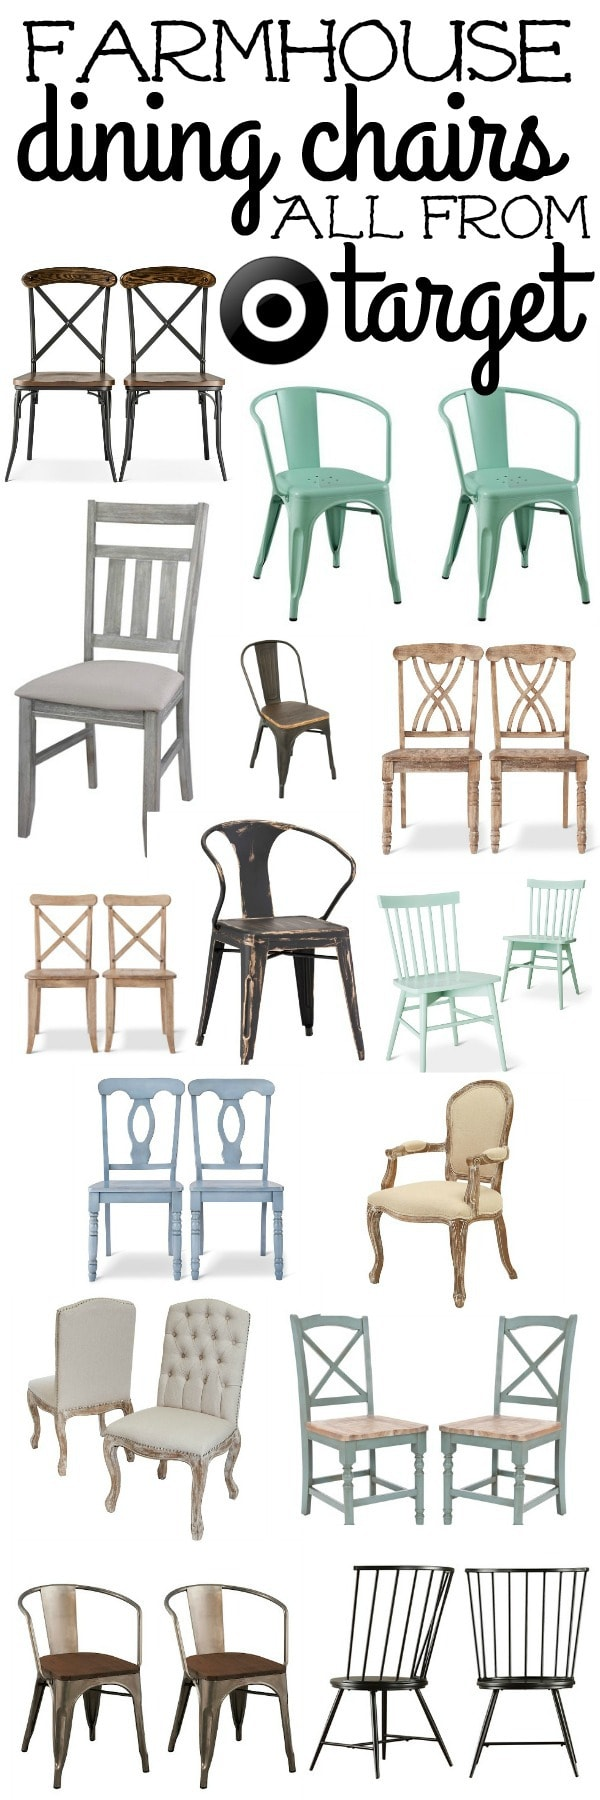 Lovely Farmhouse Dining Chairs